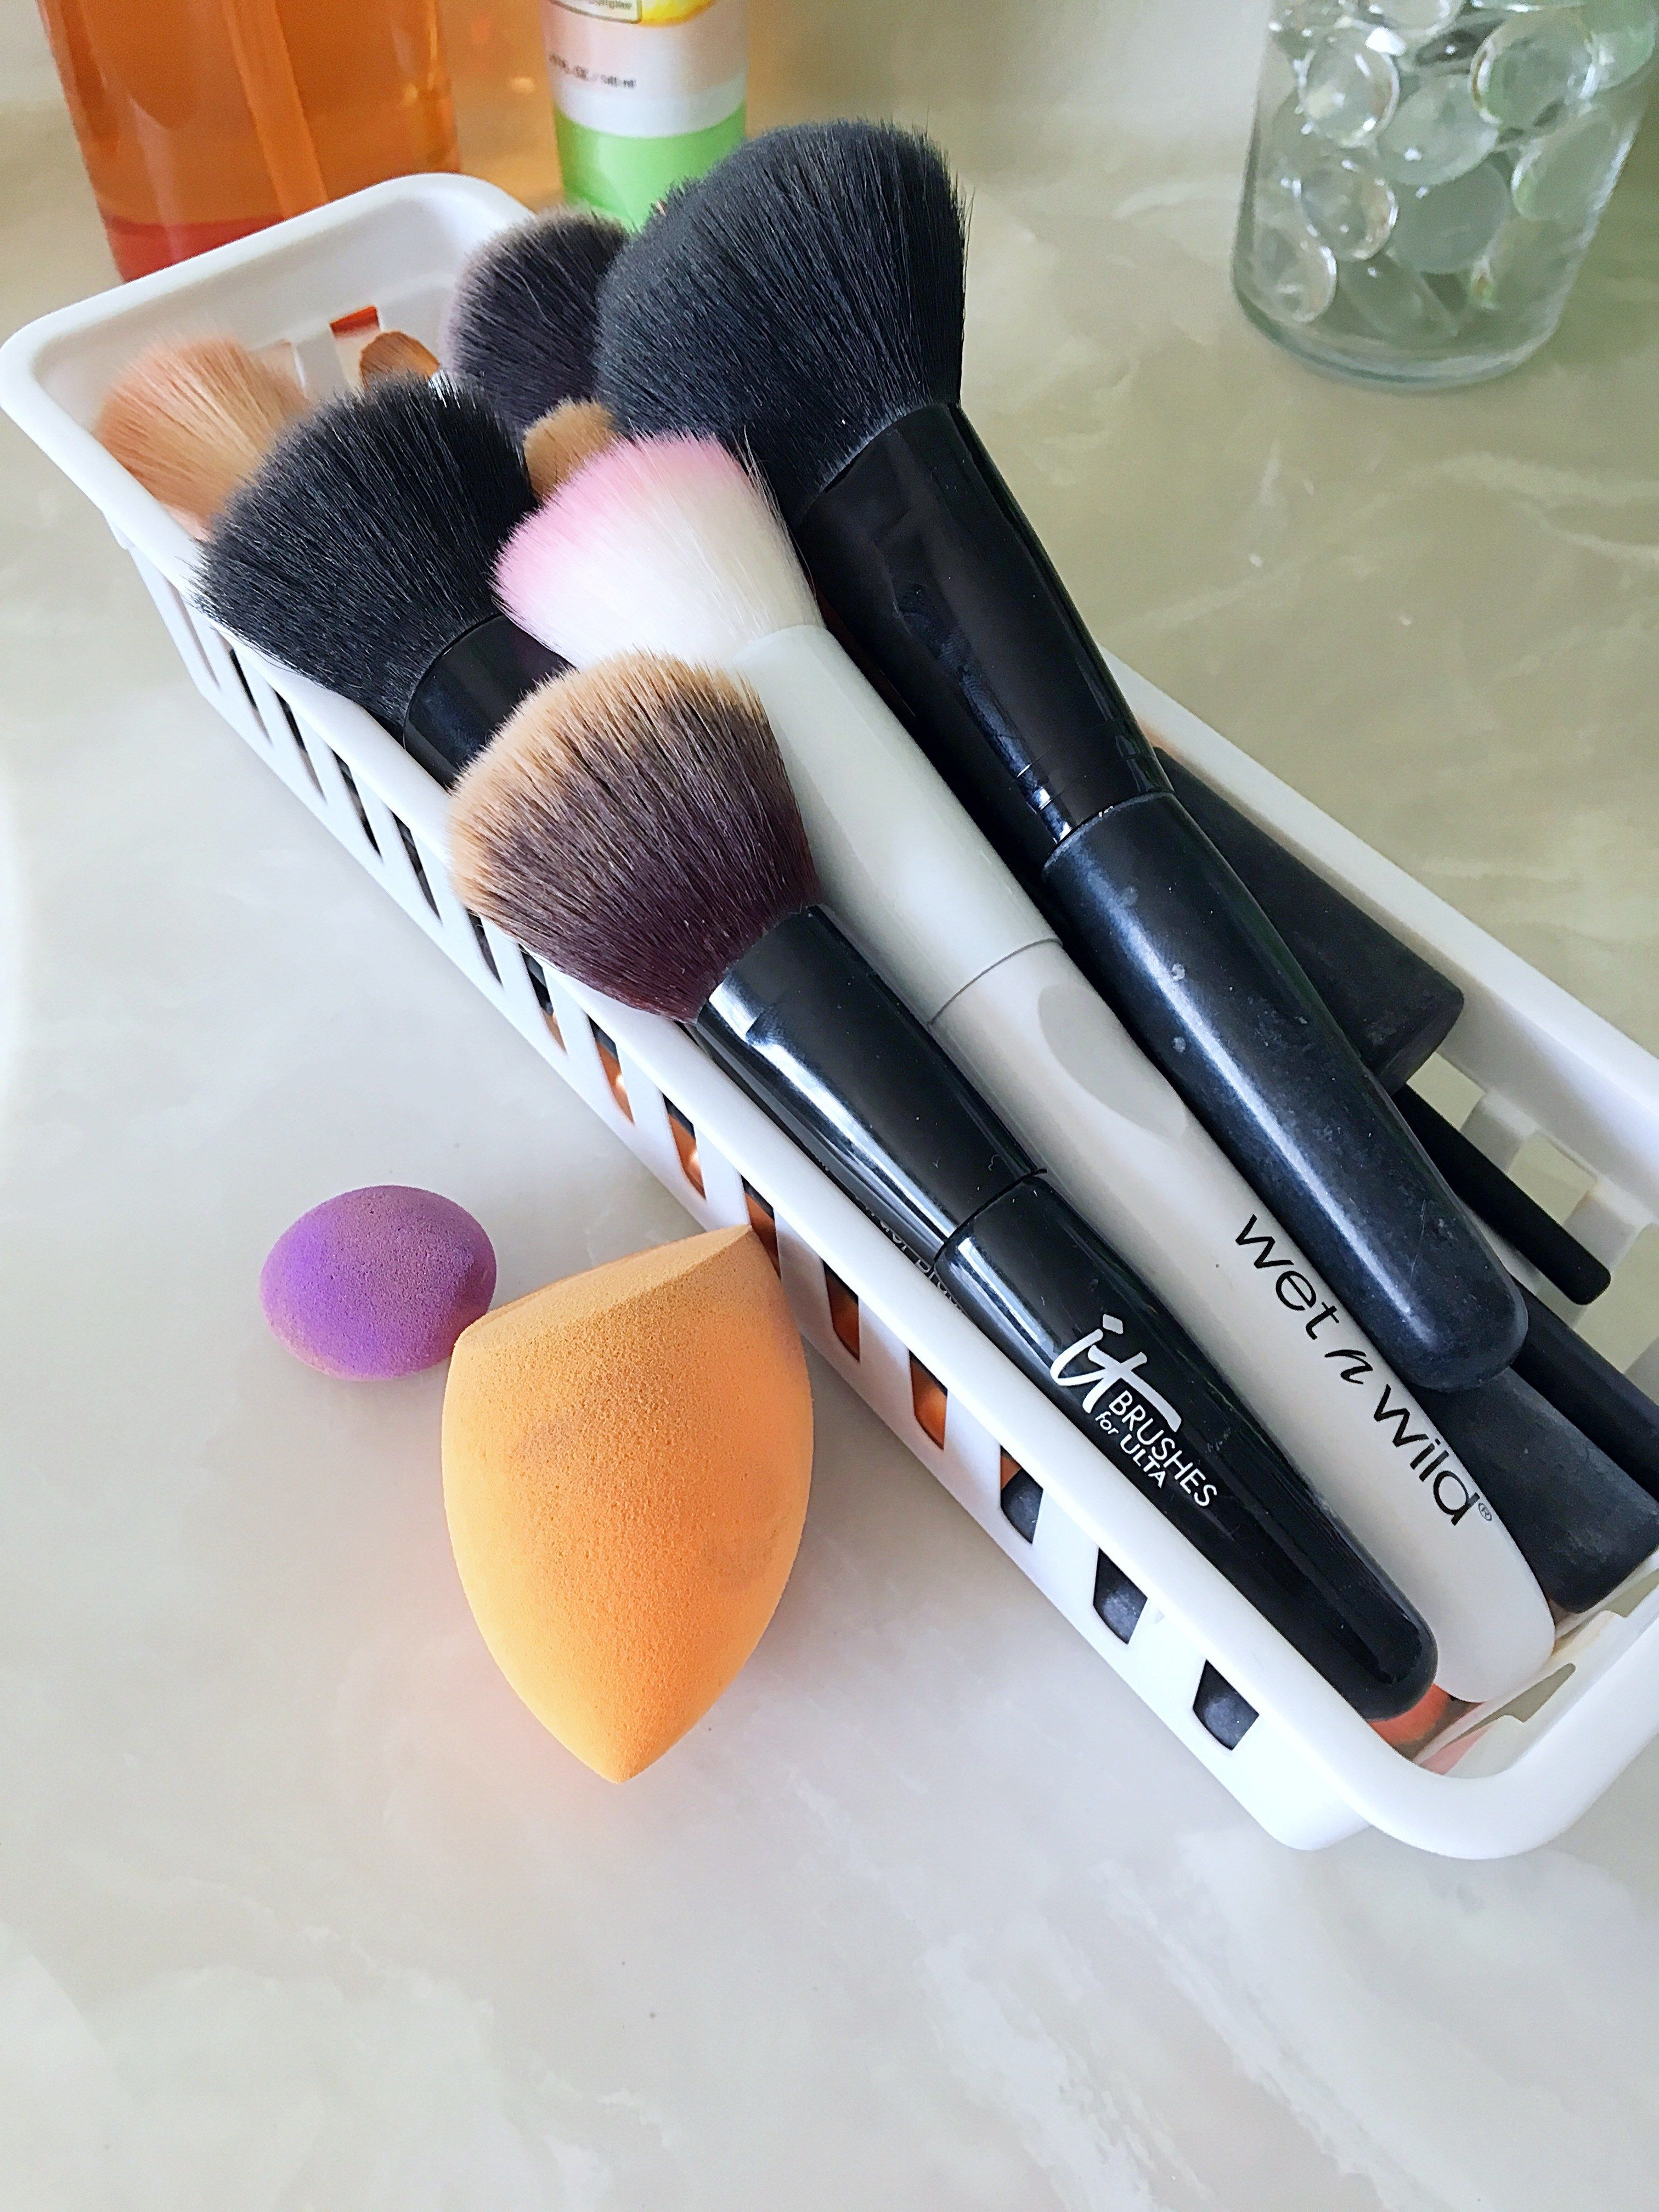 How to Clean Makeup Brushes The Easy Way | How to clean ...